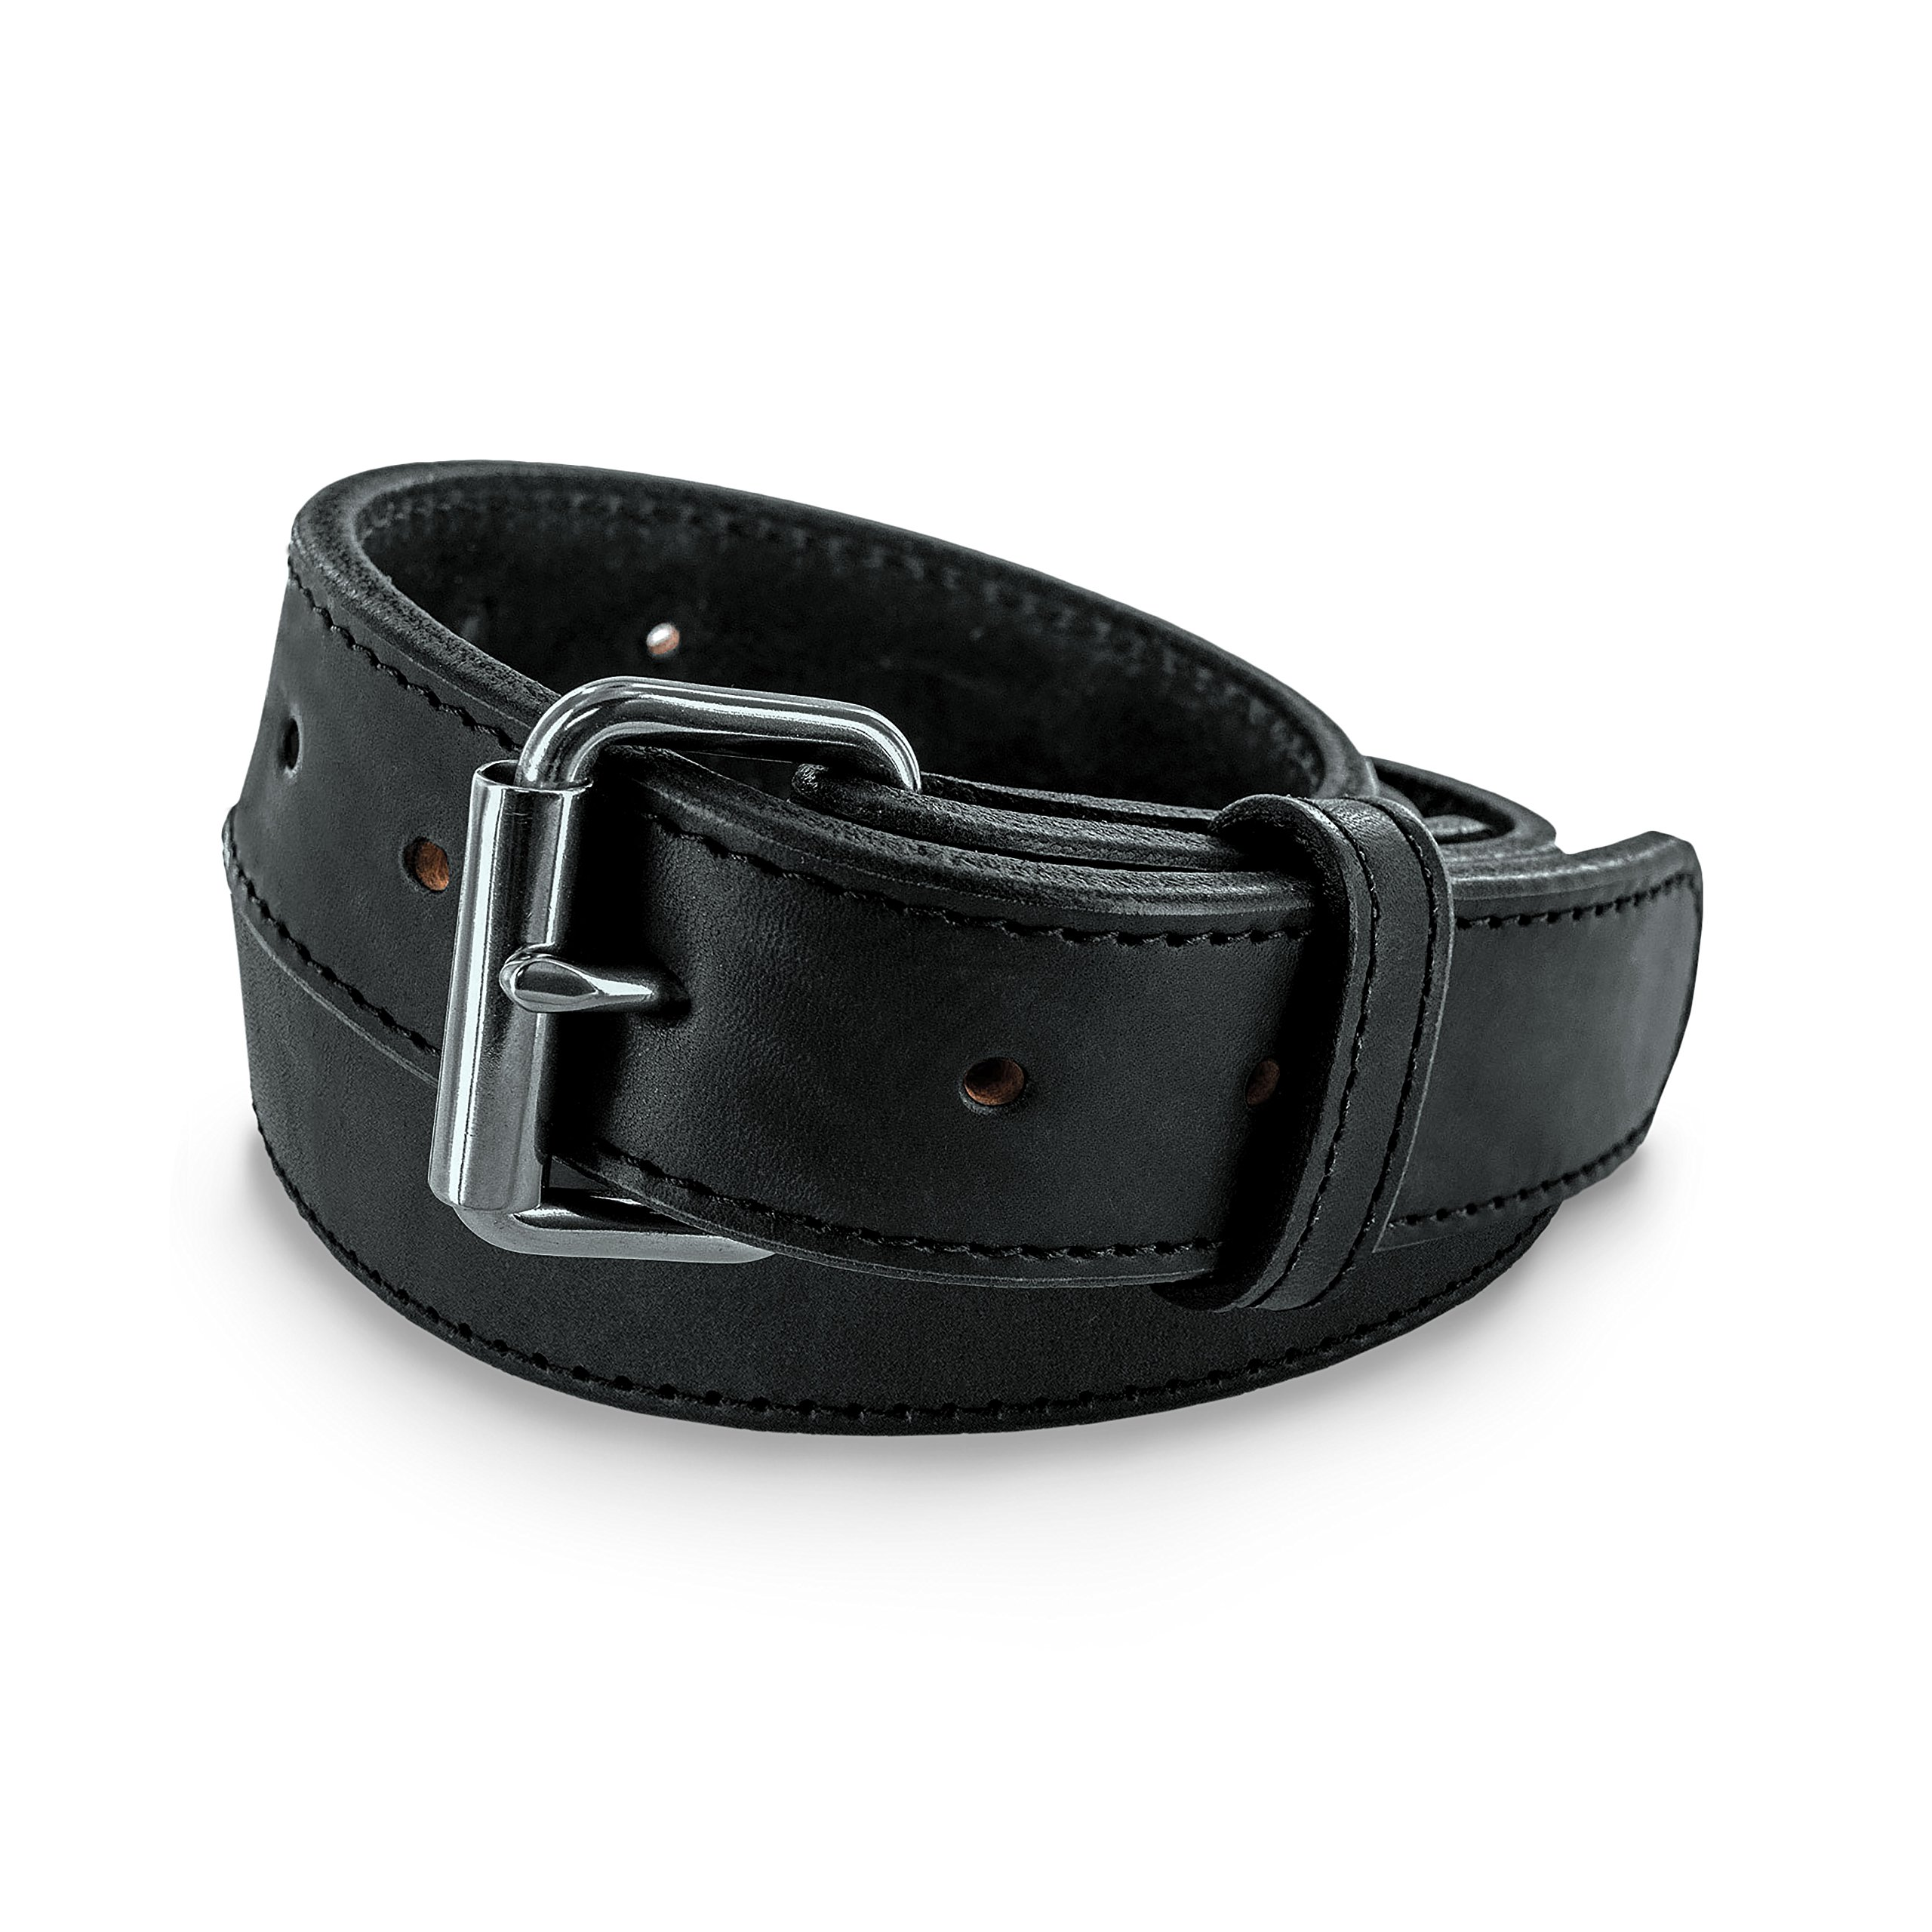 Hanks Extreme - Leather Gun Belt for CCW - Concealed Carry - 17oz. Premium Leather Belt - Made in USA - 100-Year Warranty - Black - Size 40